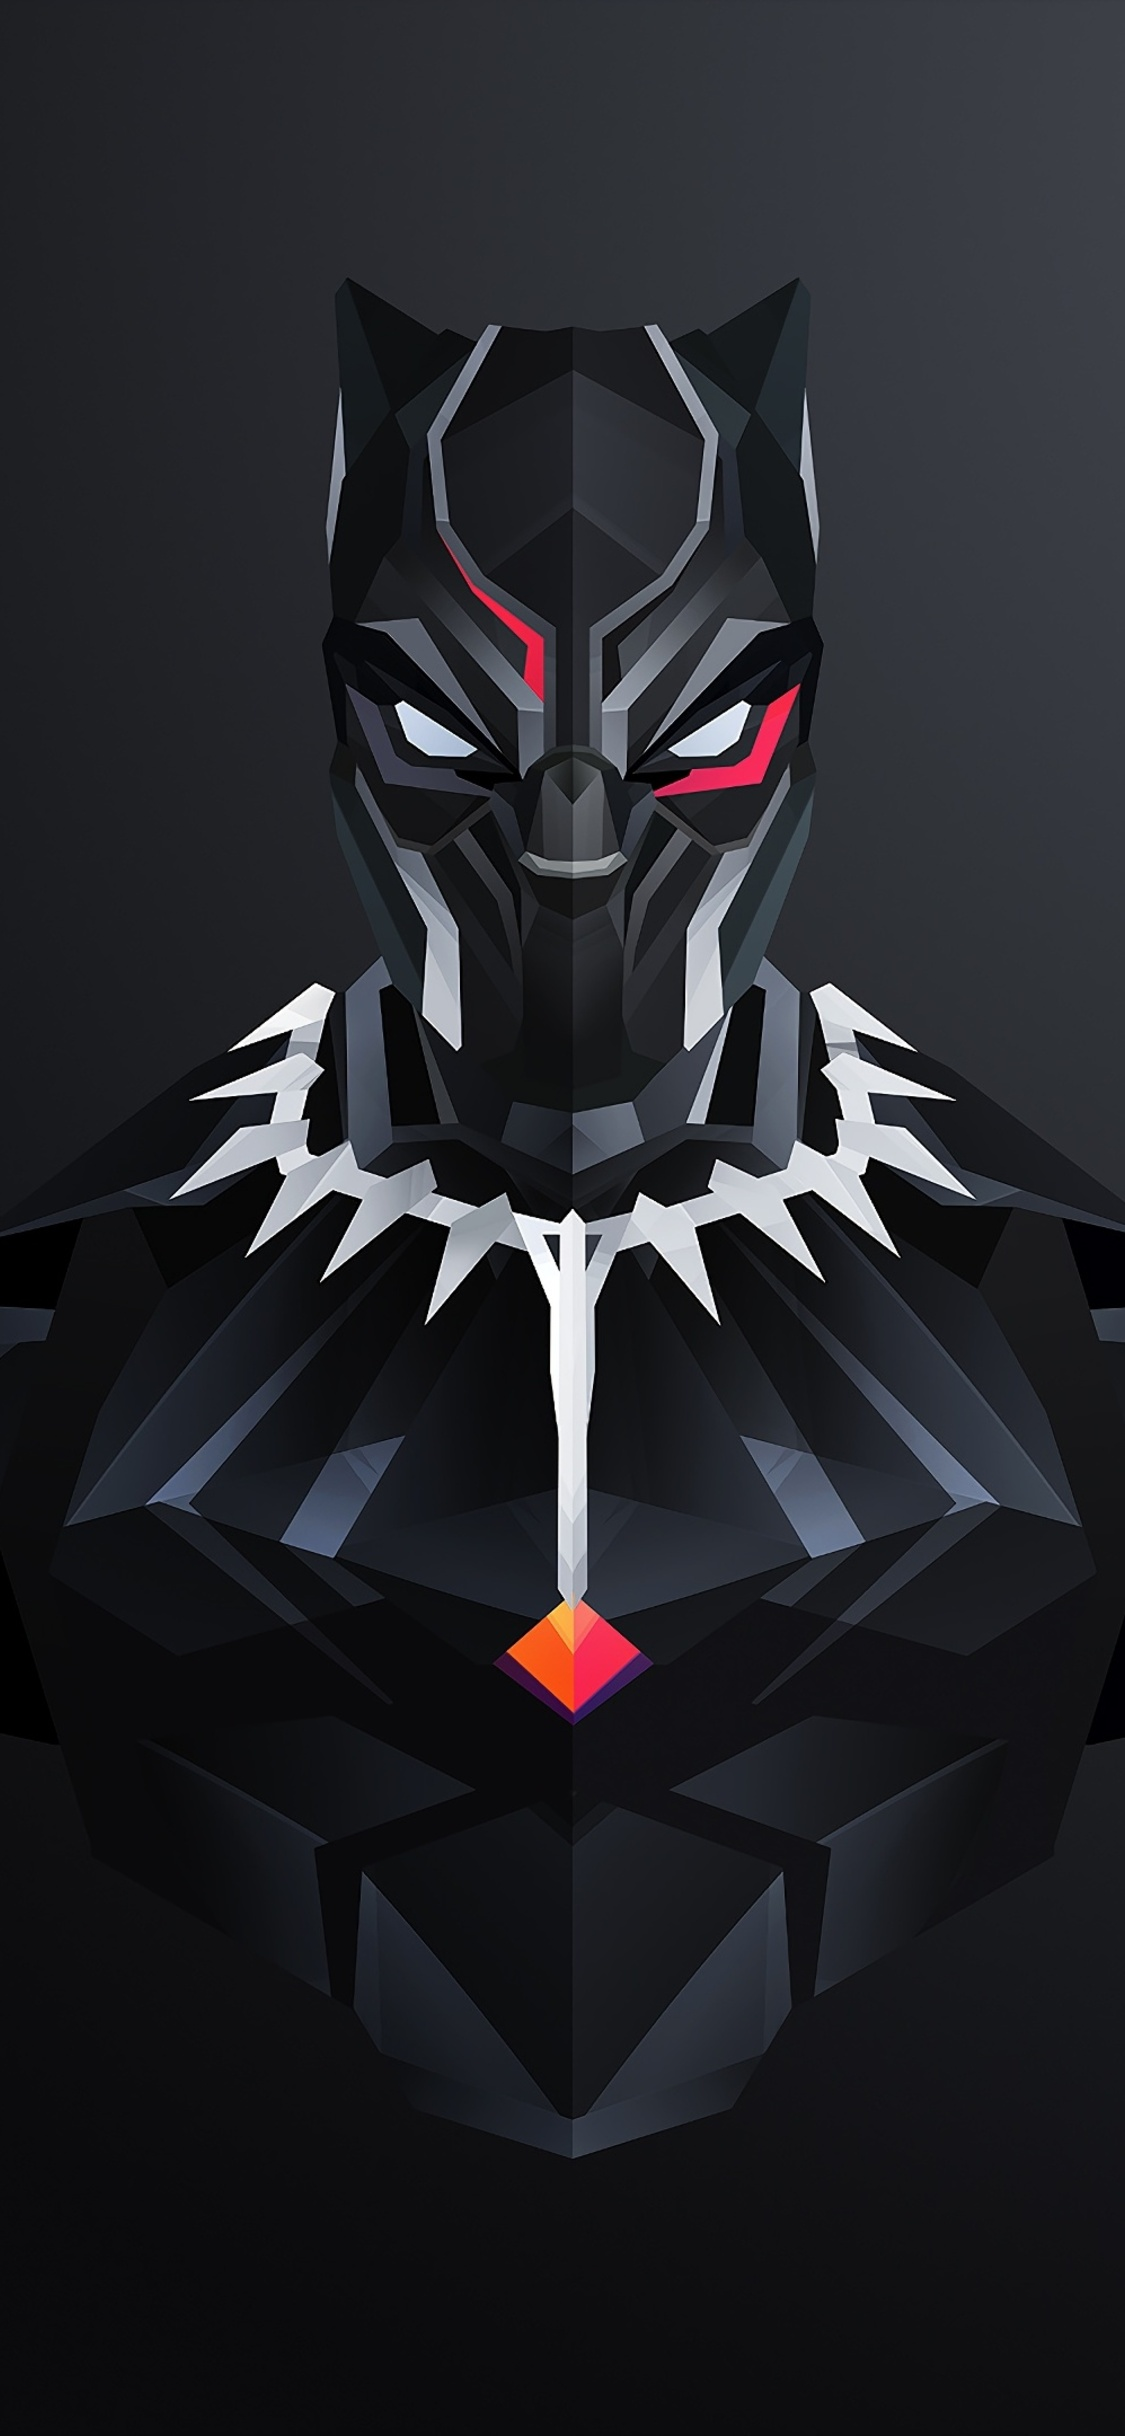 1125x2436 Black Panther Minimalism 2018 Iphone Xs Iphone 10 Iphone X Hd 4k Wallpapers Images Backgrounds Photos And Pictures